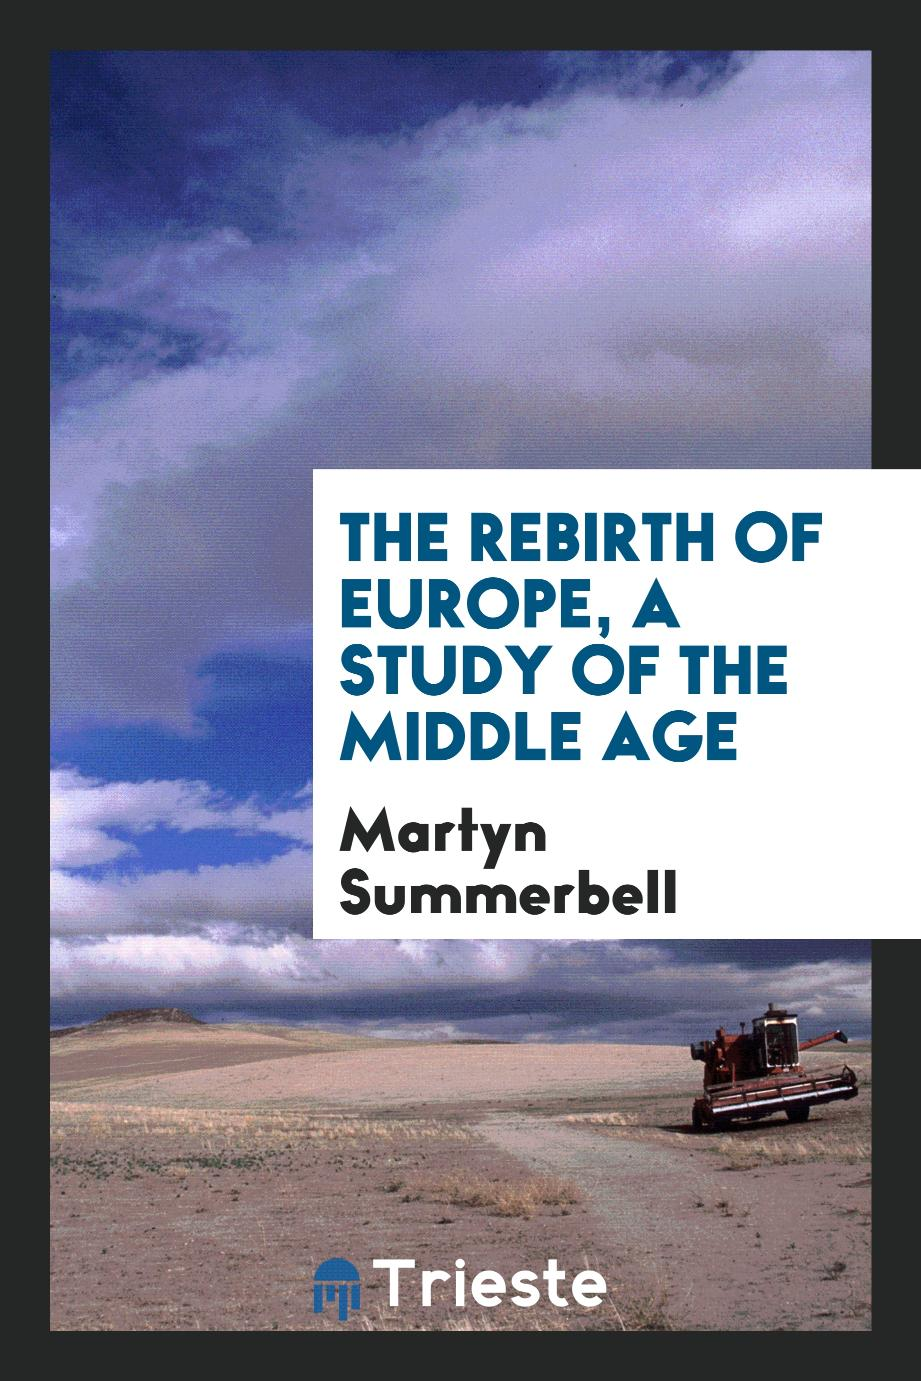 The rebirth of Europe, a study of the middle age